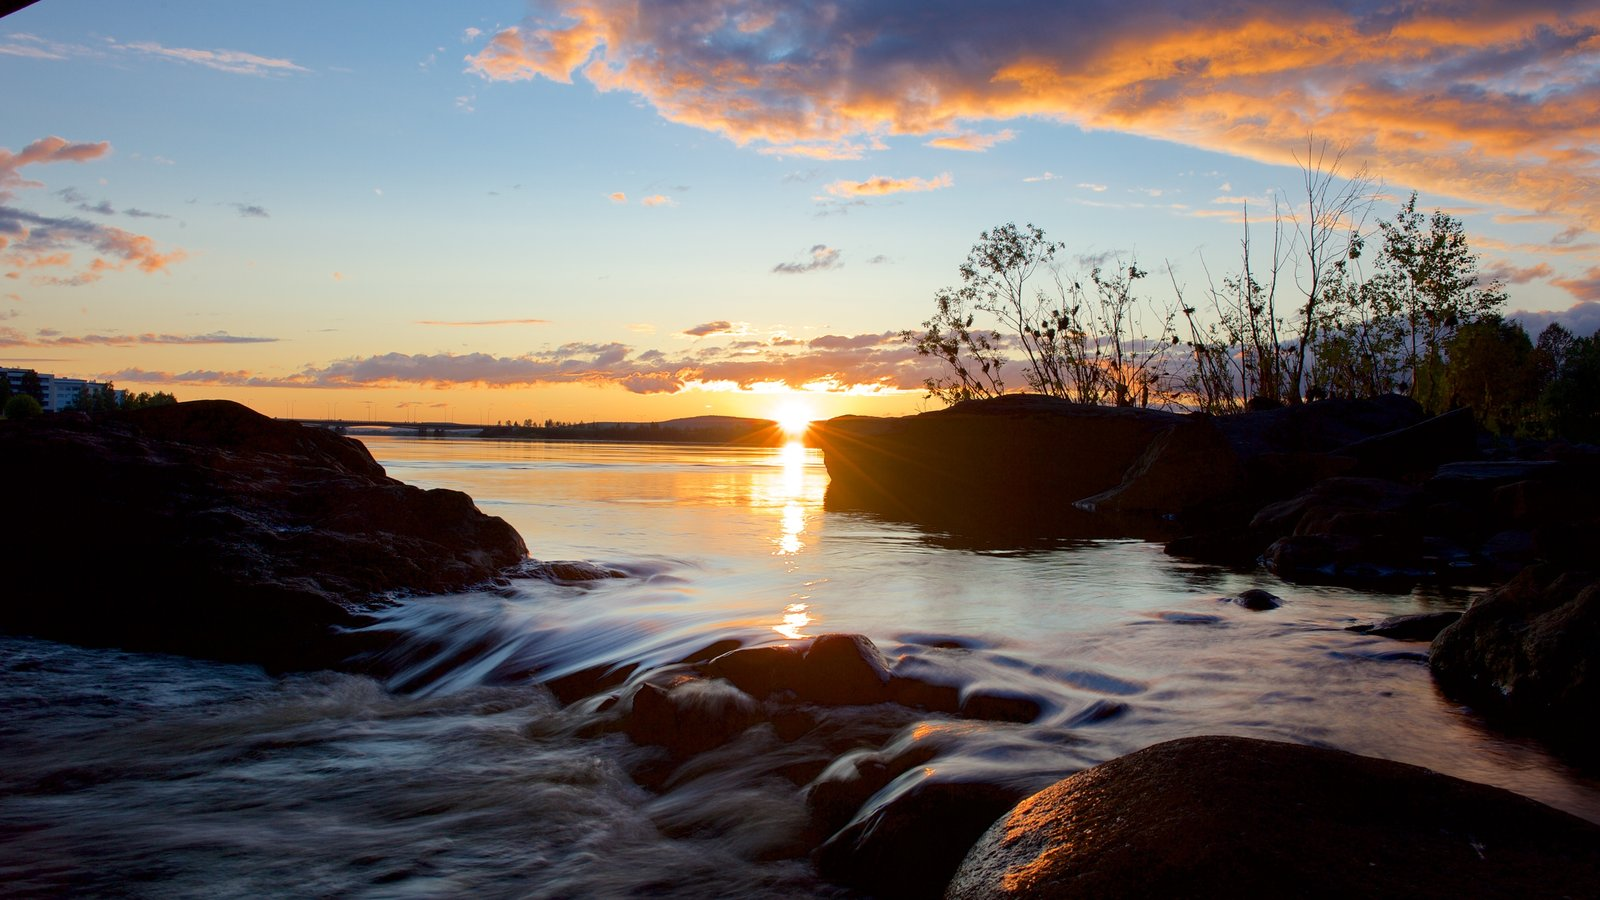 Finland featuring a sunset and a lake or waterhole